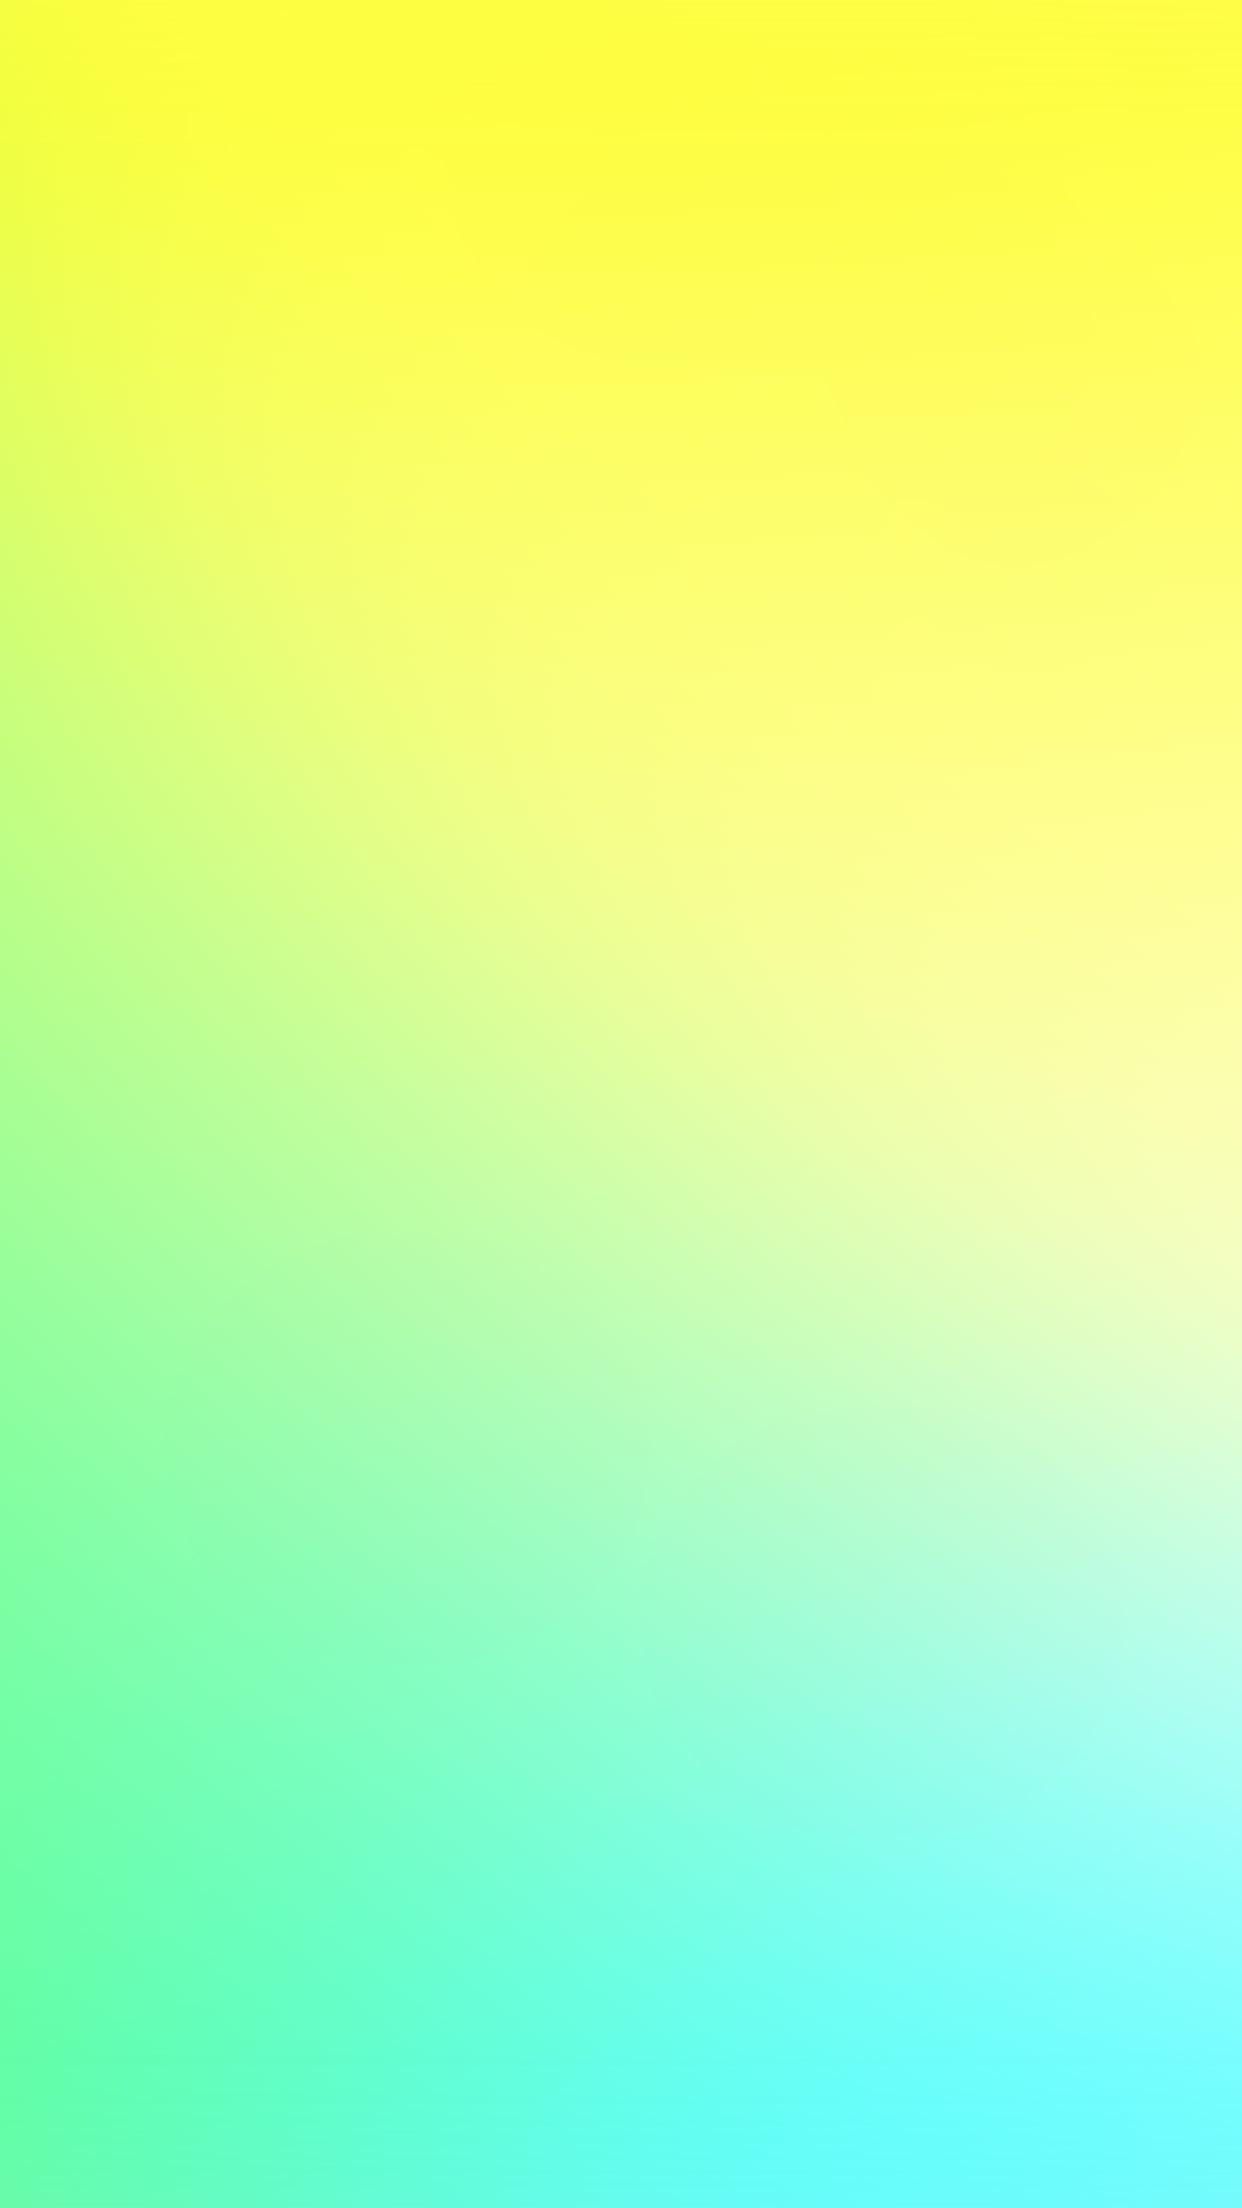 Yellow Colour Wallpaper (65+ images)